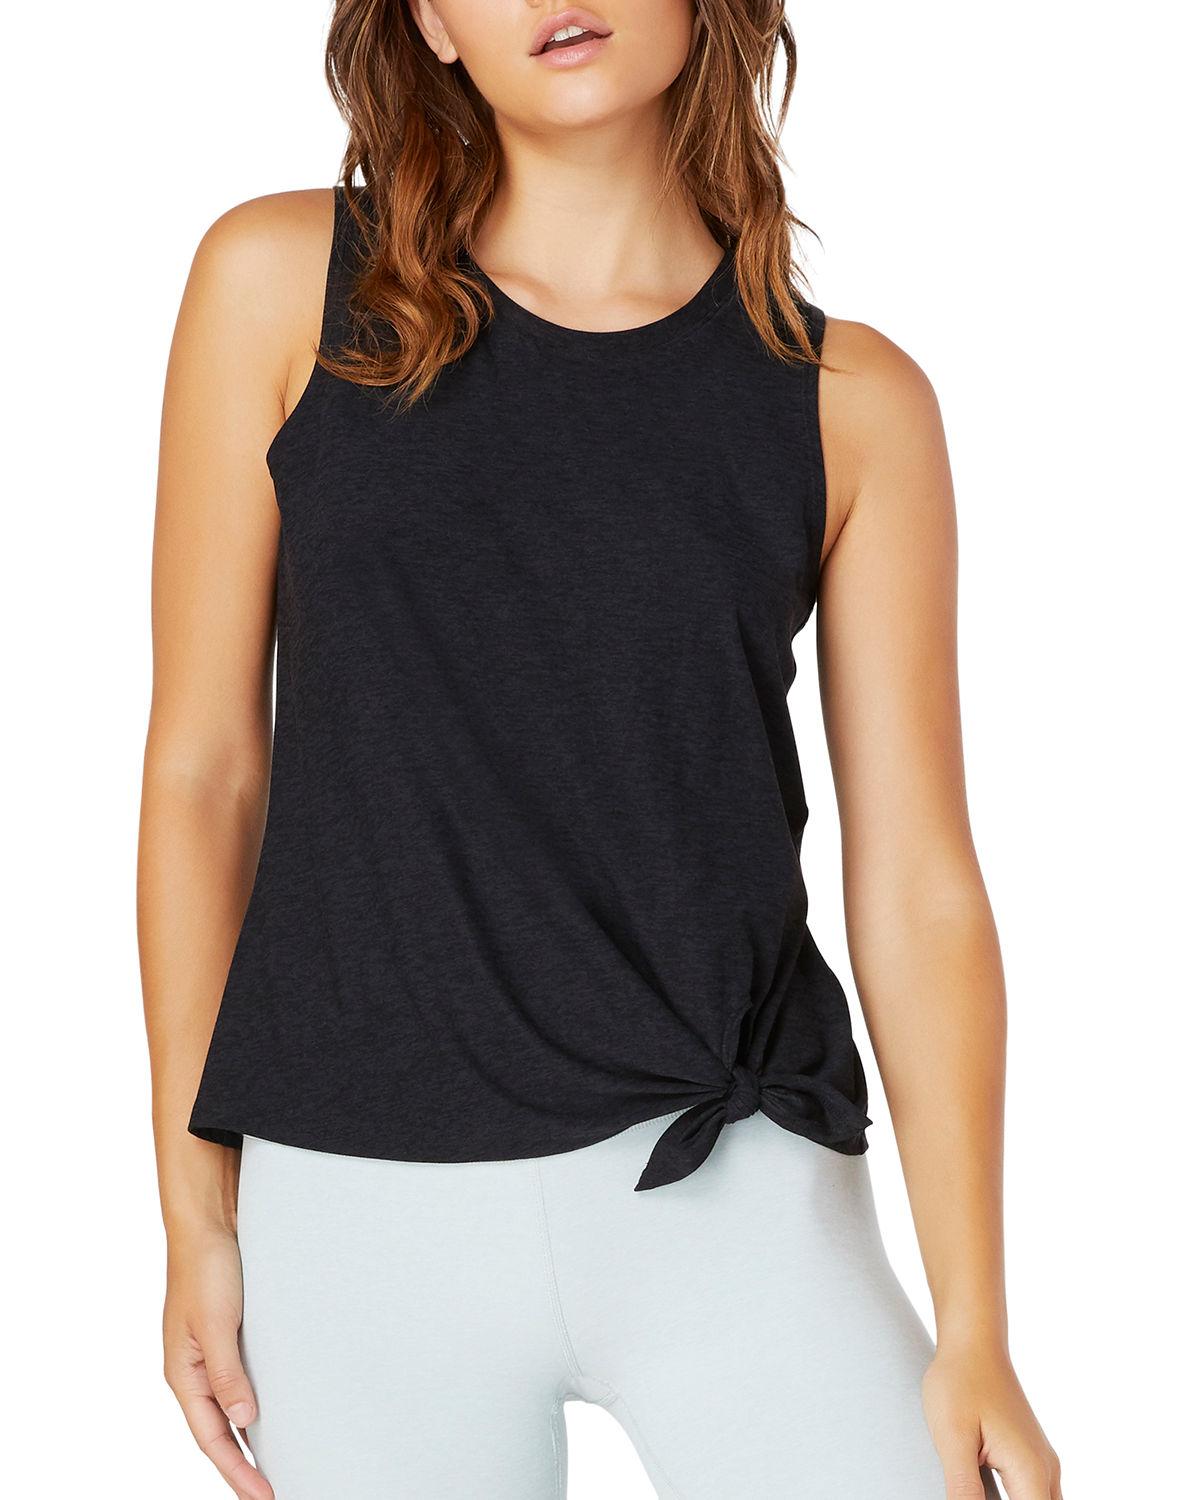 All For Ties Knotted Muscle Tank